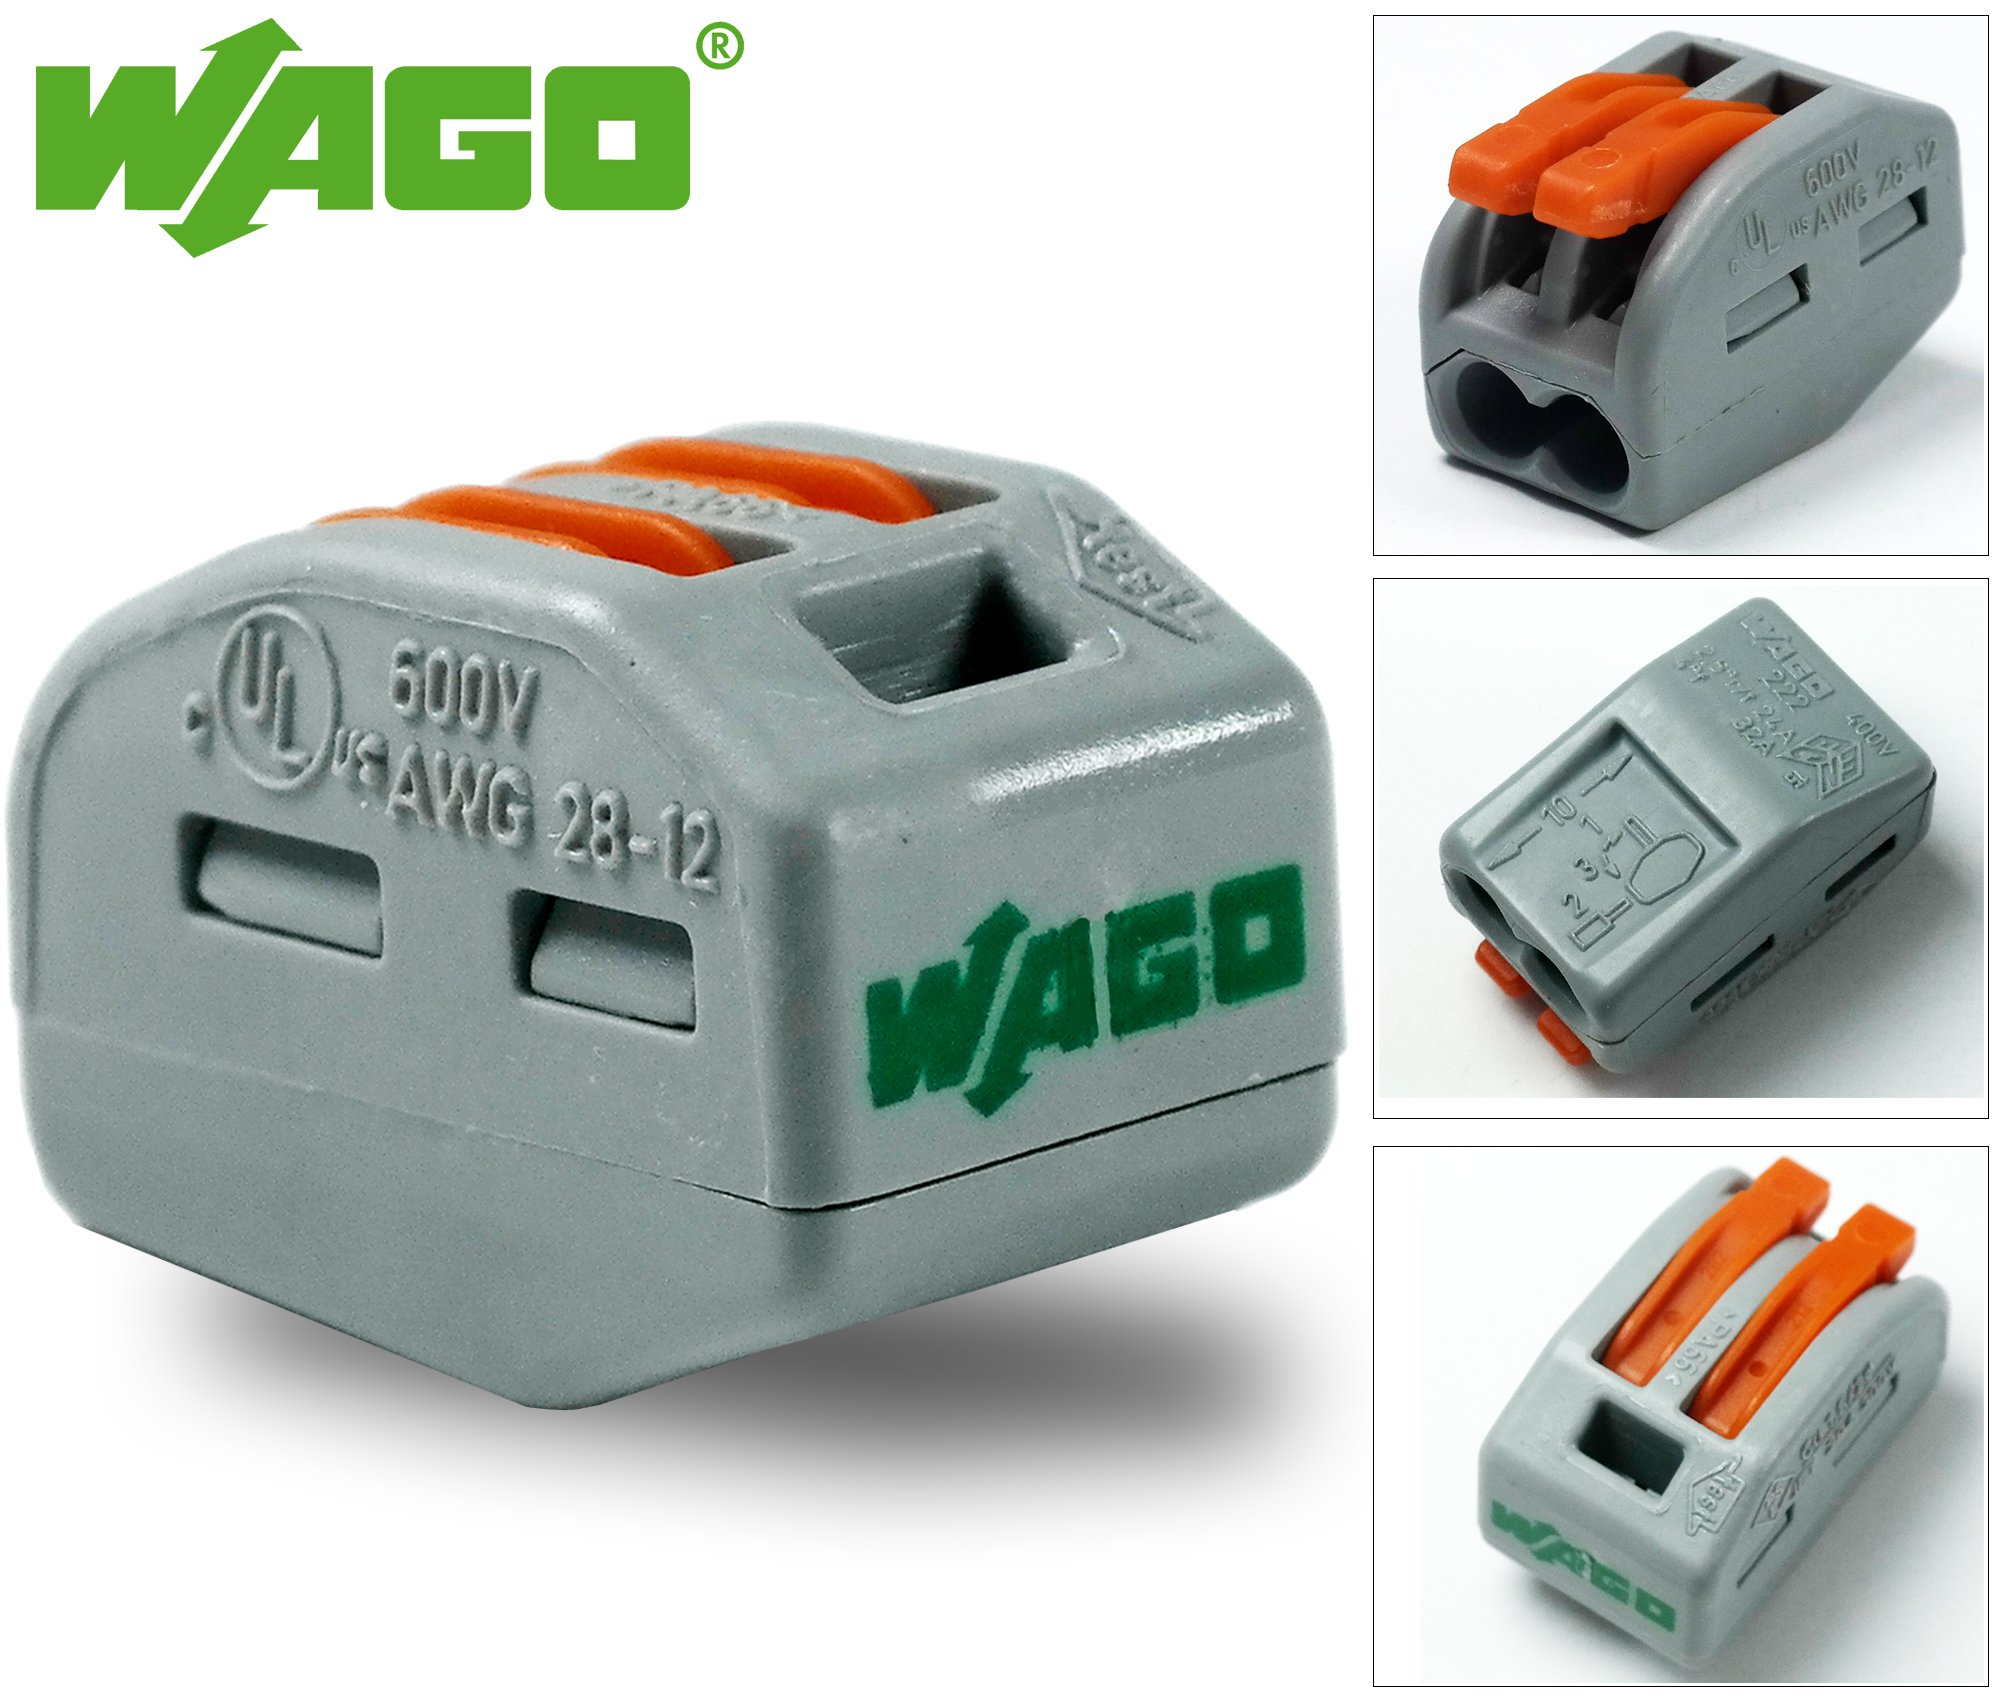 Wago 222-412 Lever-Nuts 2 Conductor (2 Way) Conductor Compact Connectors Terminal Block 12-28 AWG, 32A, 2 Port (Pack of 20)